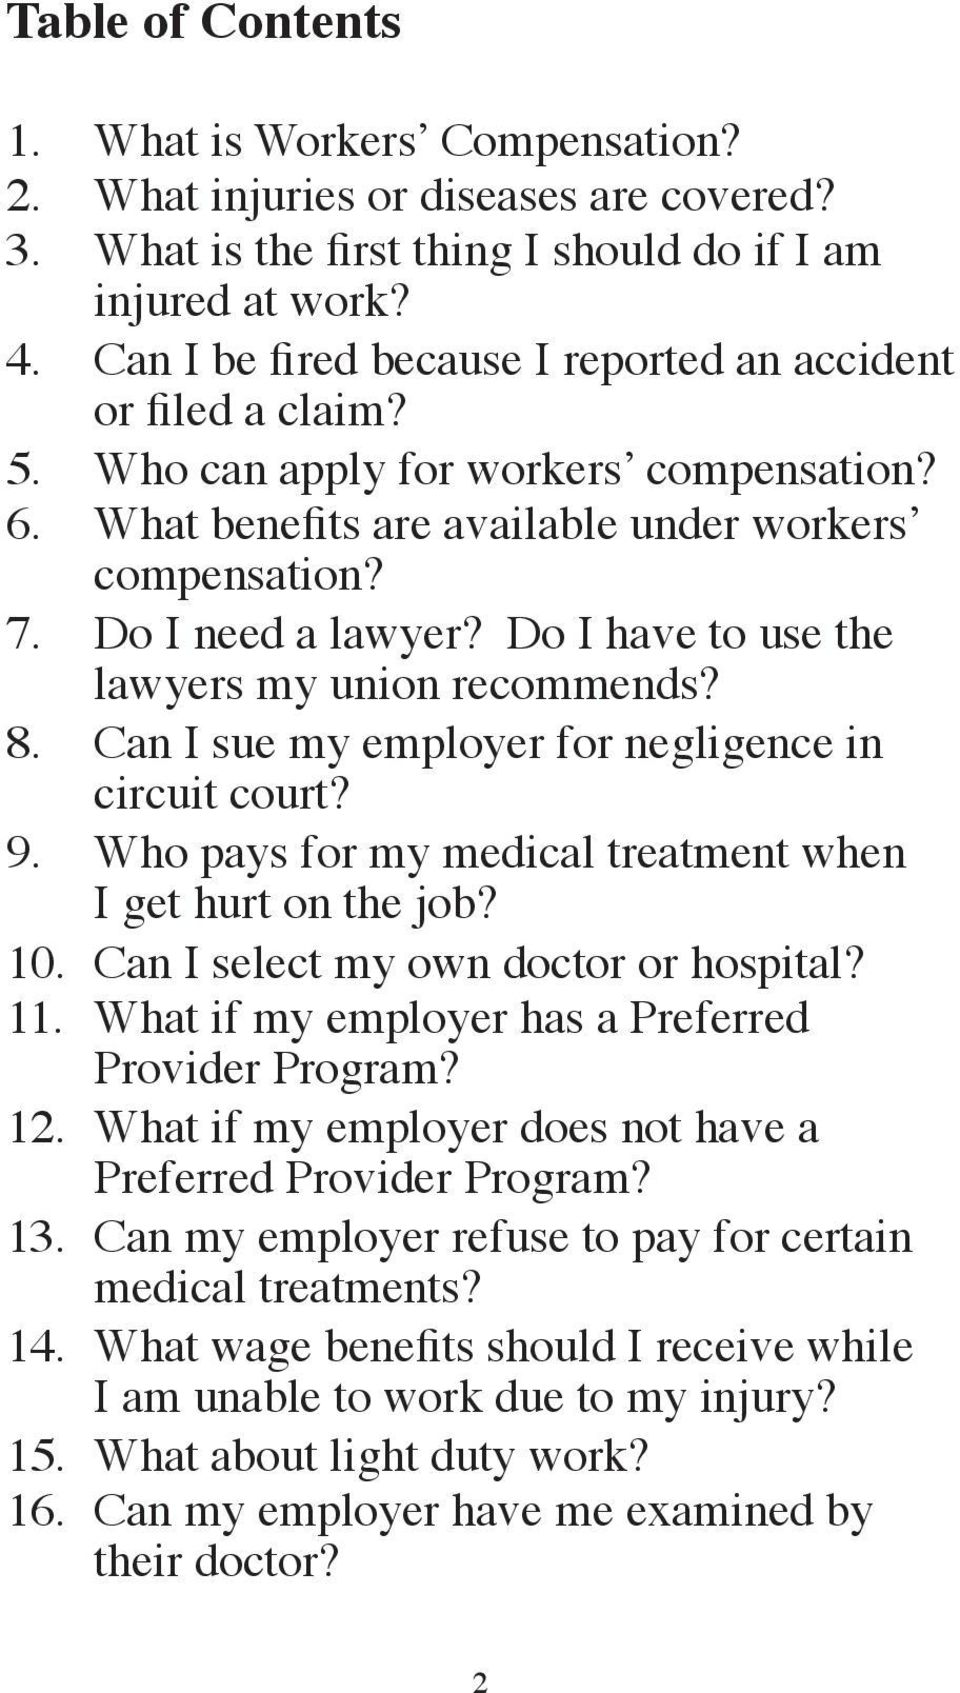 Do I have to use the lawyers my union recommends? 8. Can I sue my employer for negligence in circuit court? 9. Who pays for my medical treatment when I get hurt on the job? 10.